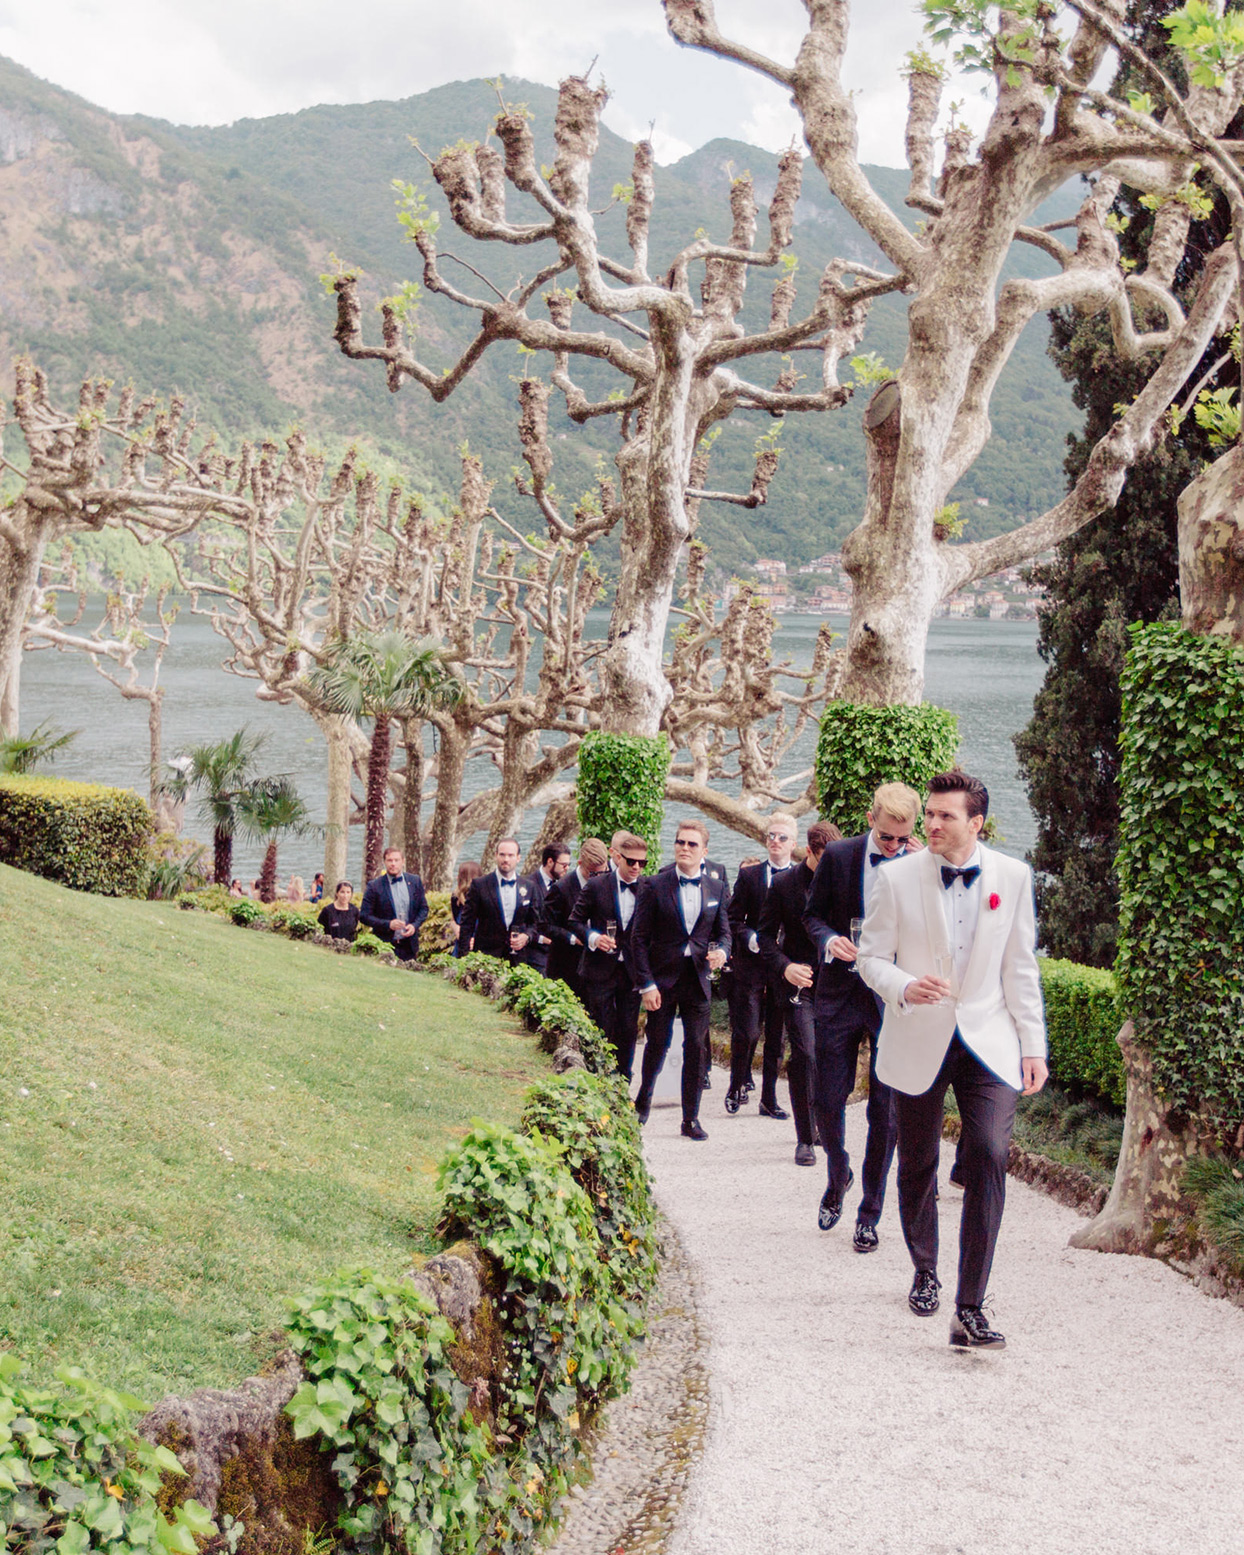 kiira arthur wedding groomsmen walking up rustic path